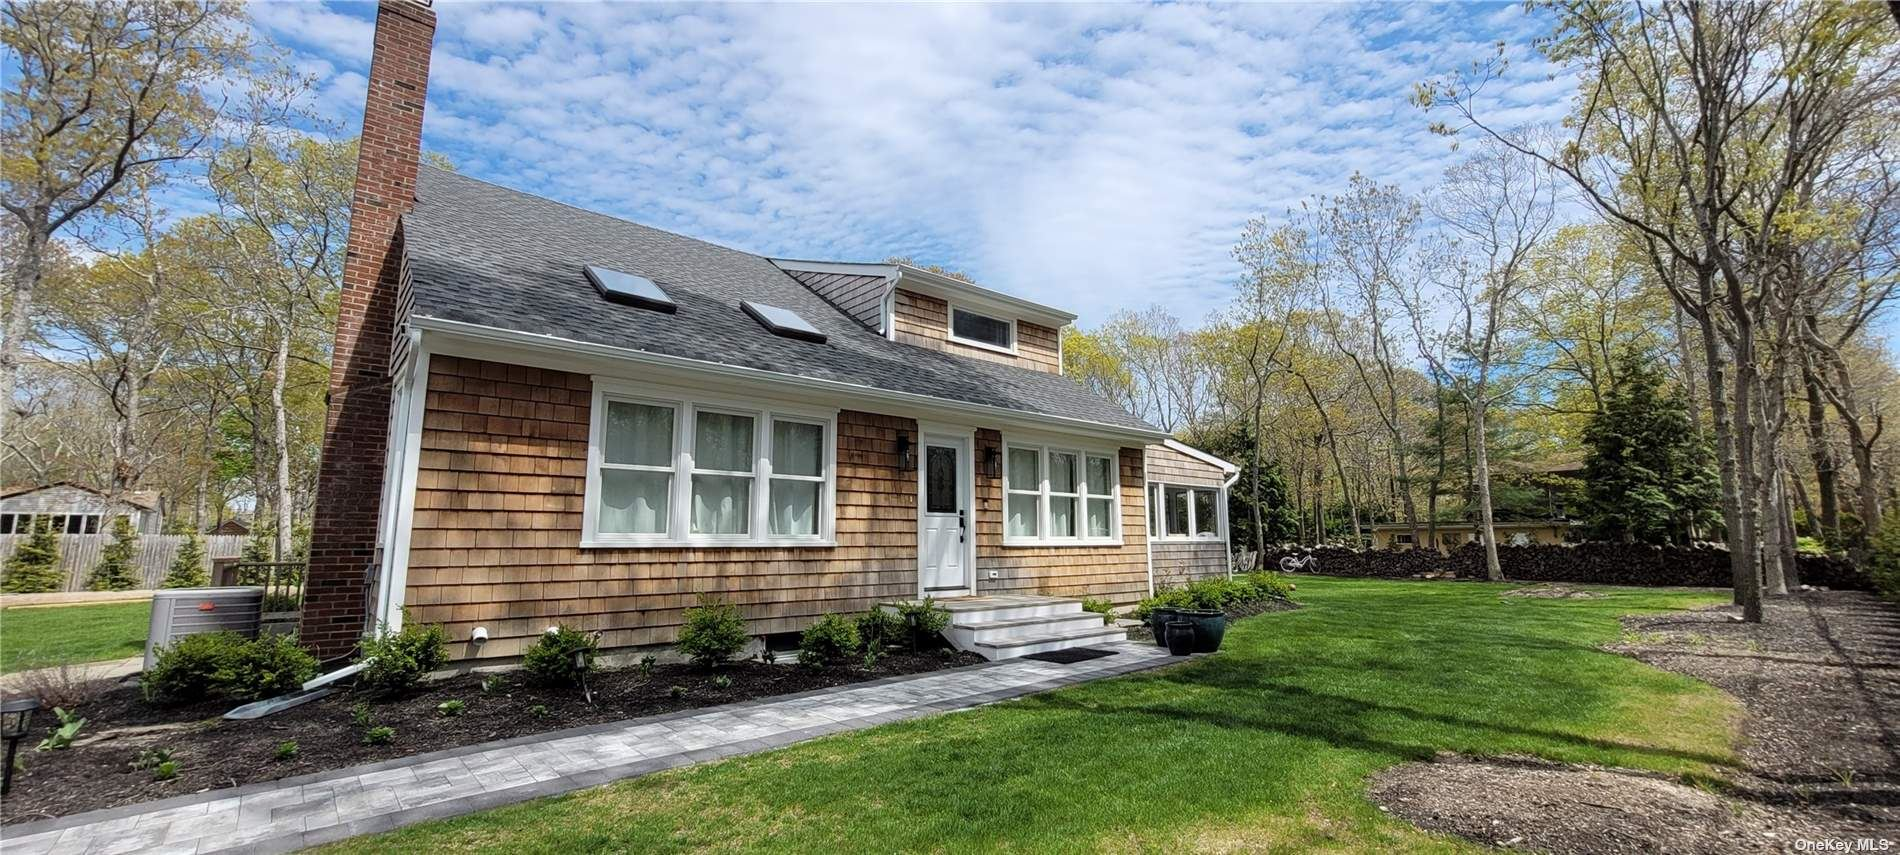 24 White Birch Trail, East Quogue, NY 11942 - MLS#: 3313538